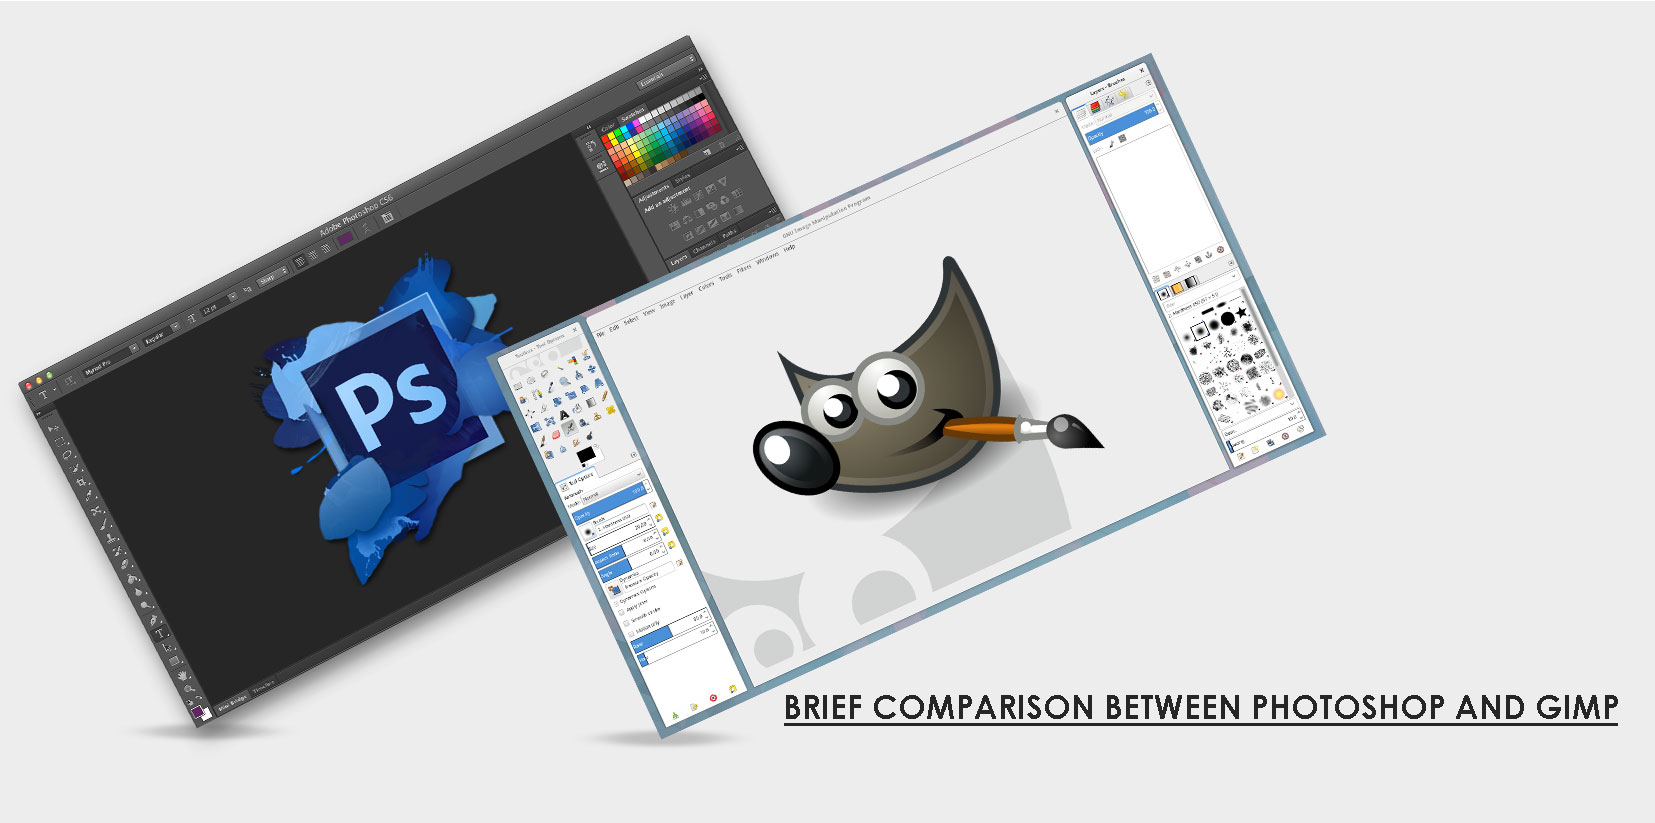 adobe photoshop vs gimp brief comparison on their utility